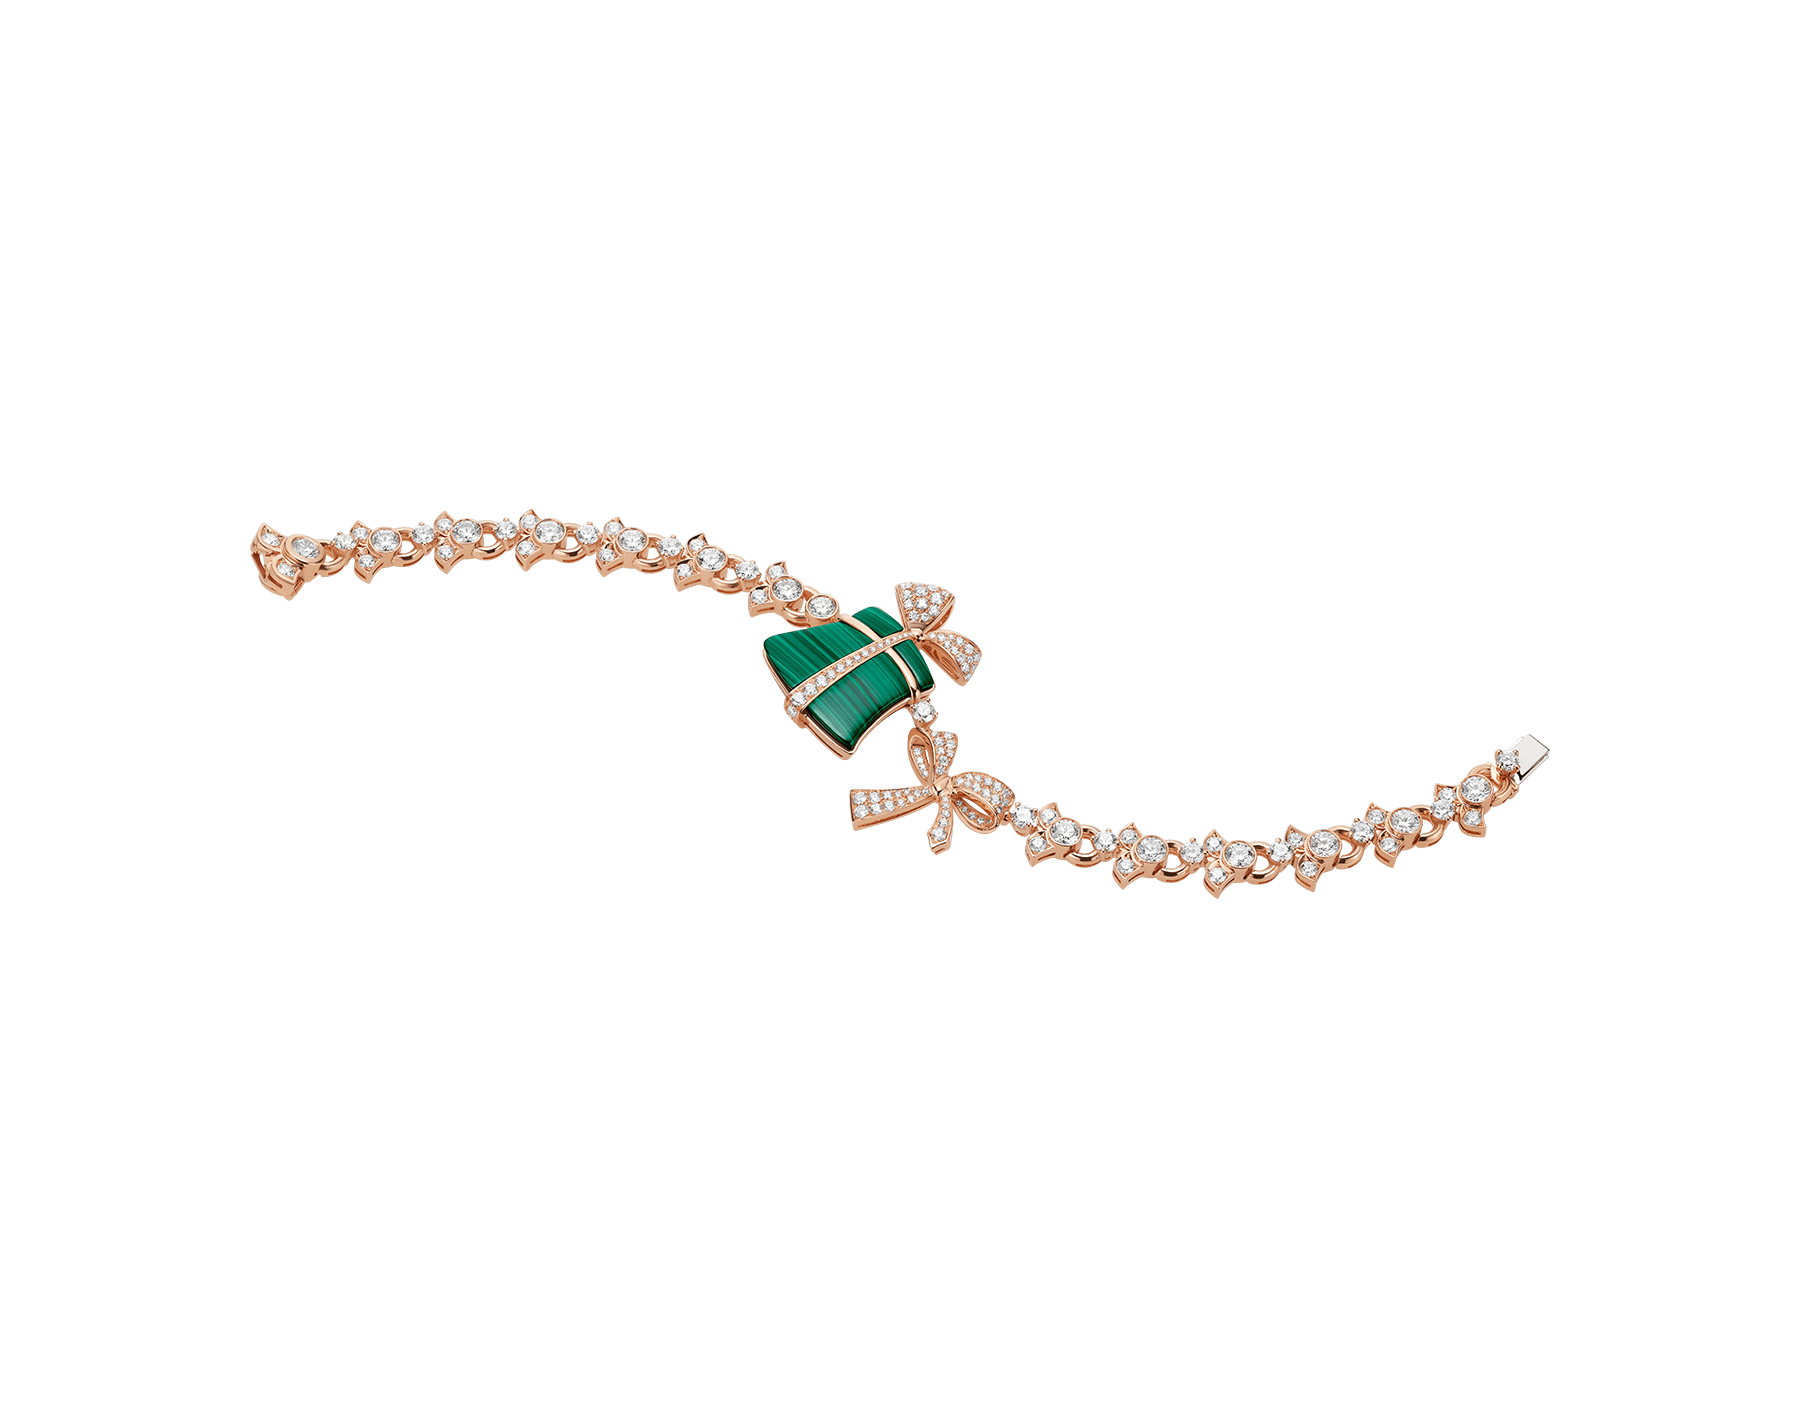 Festa 18 kt rose gold bracelet set with malachite elements and pavé diamonds BR858457 image 1